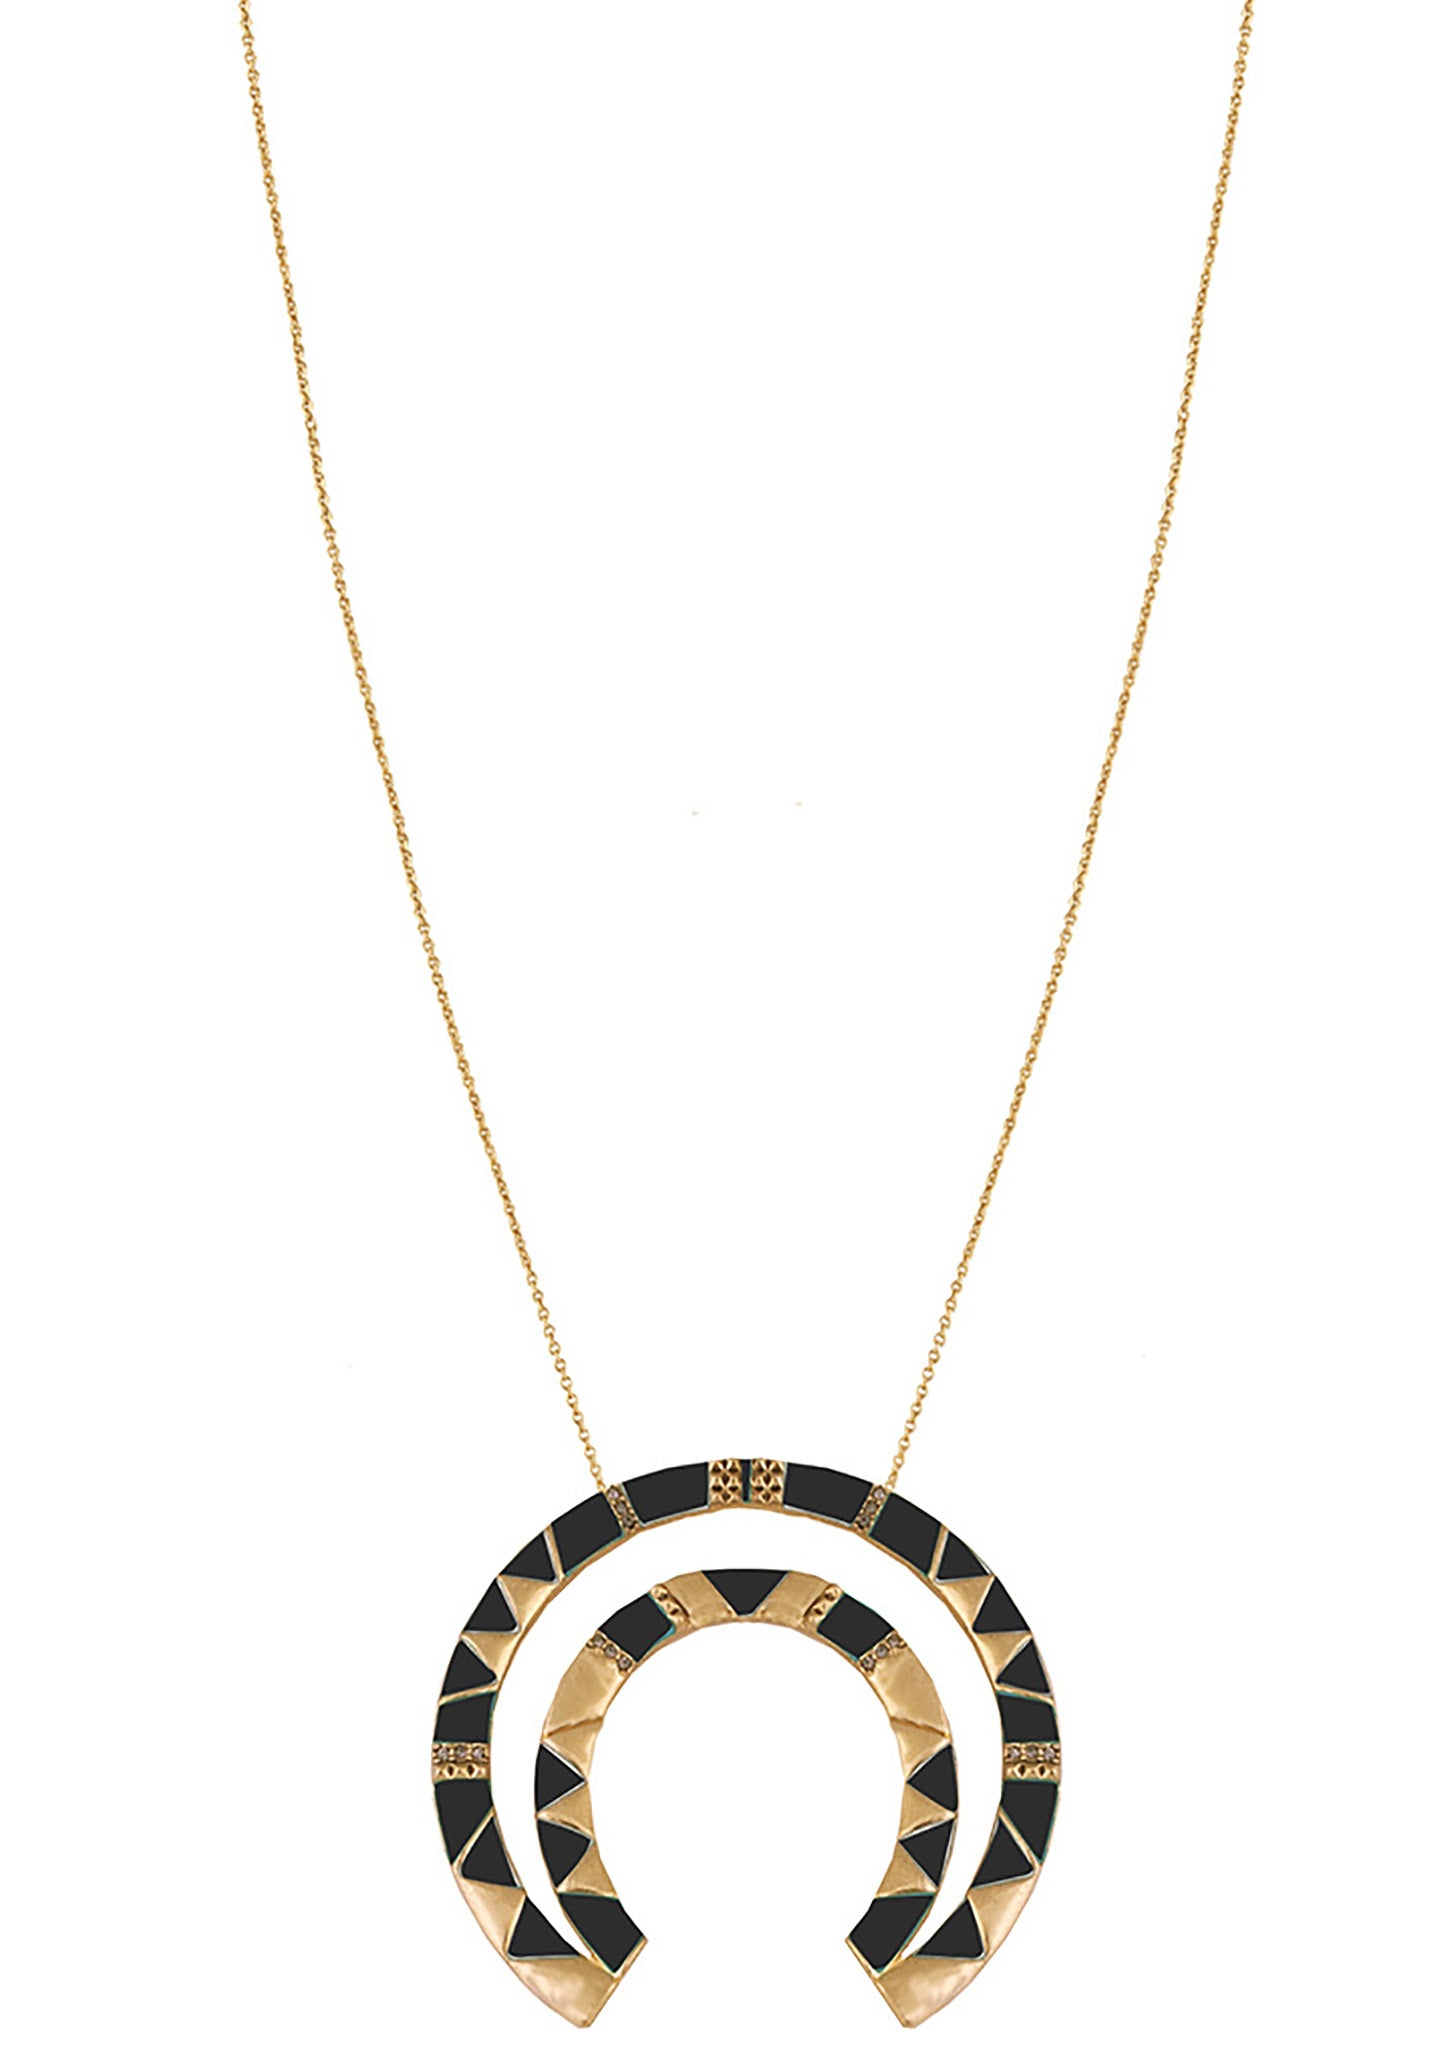 House of harlow 1960 shop house of harlow 1960 nelli pendant house of harlow 1960 nelli pendant necklace in goldblack mozeypictures Image collections